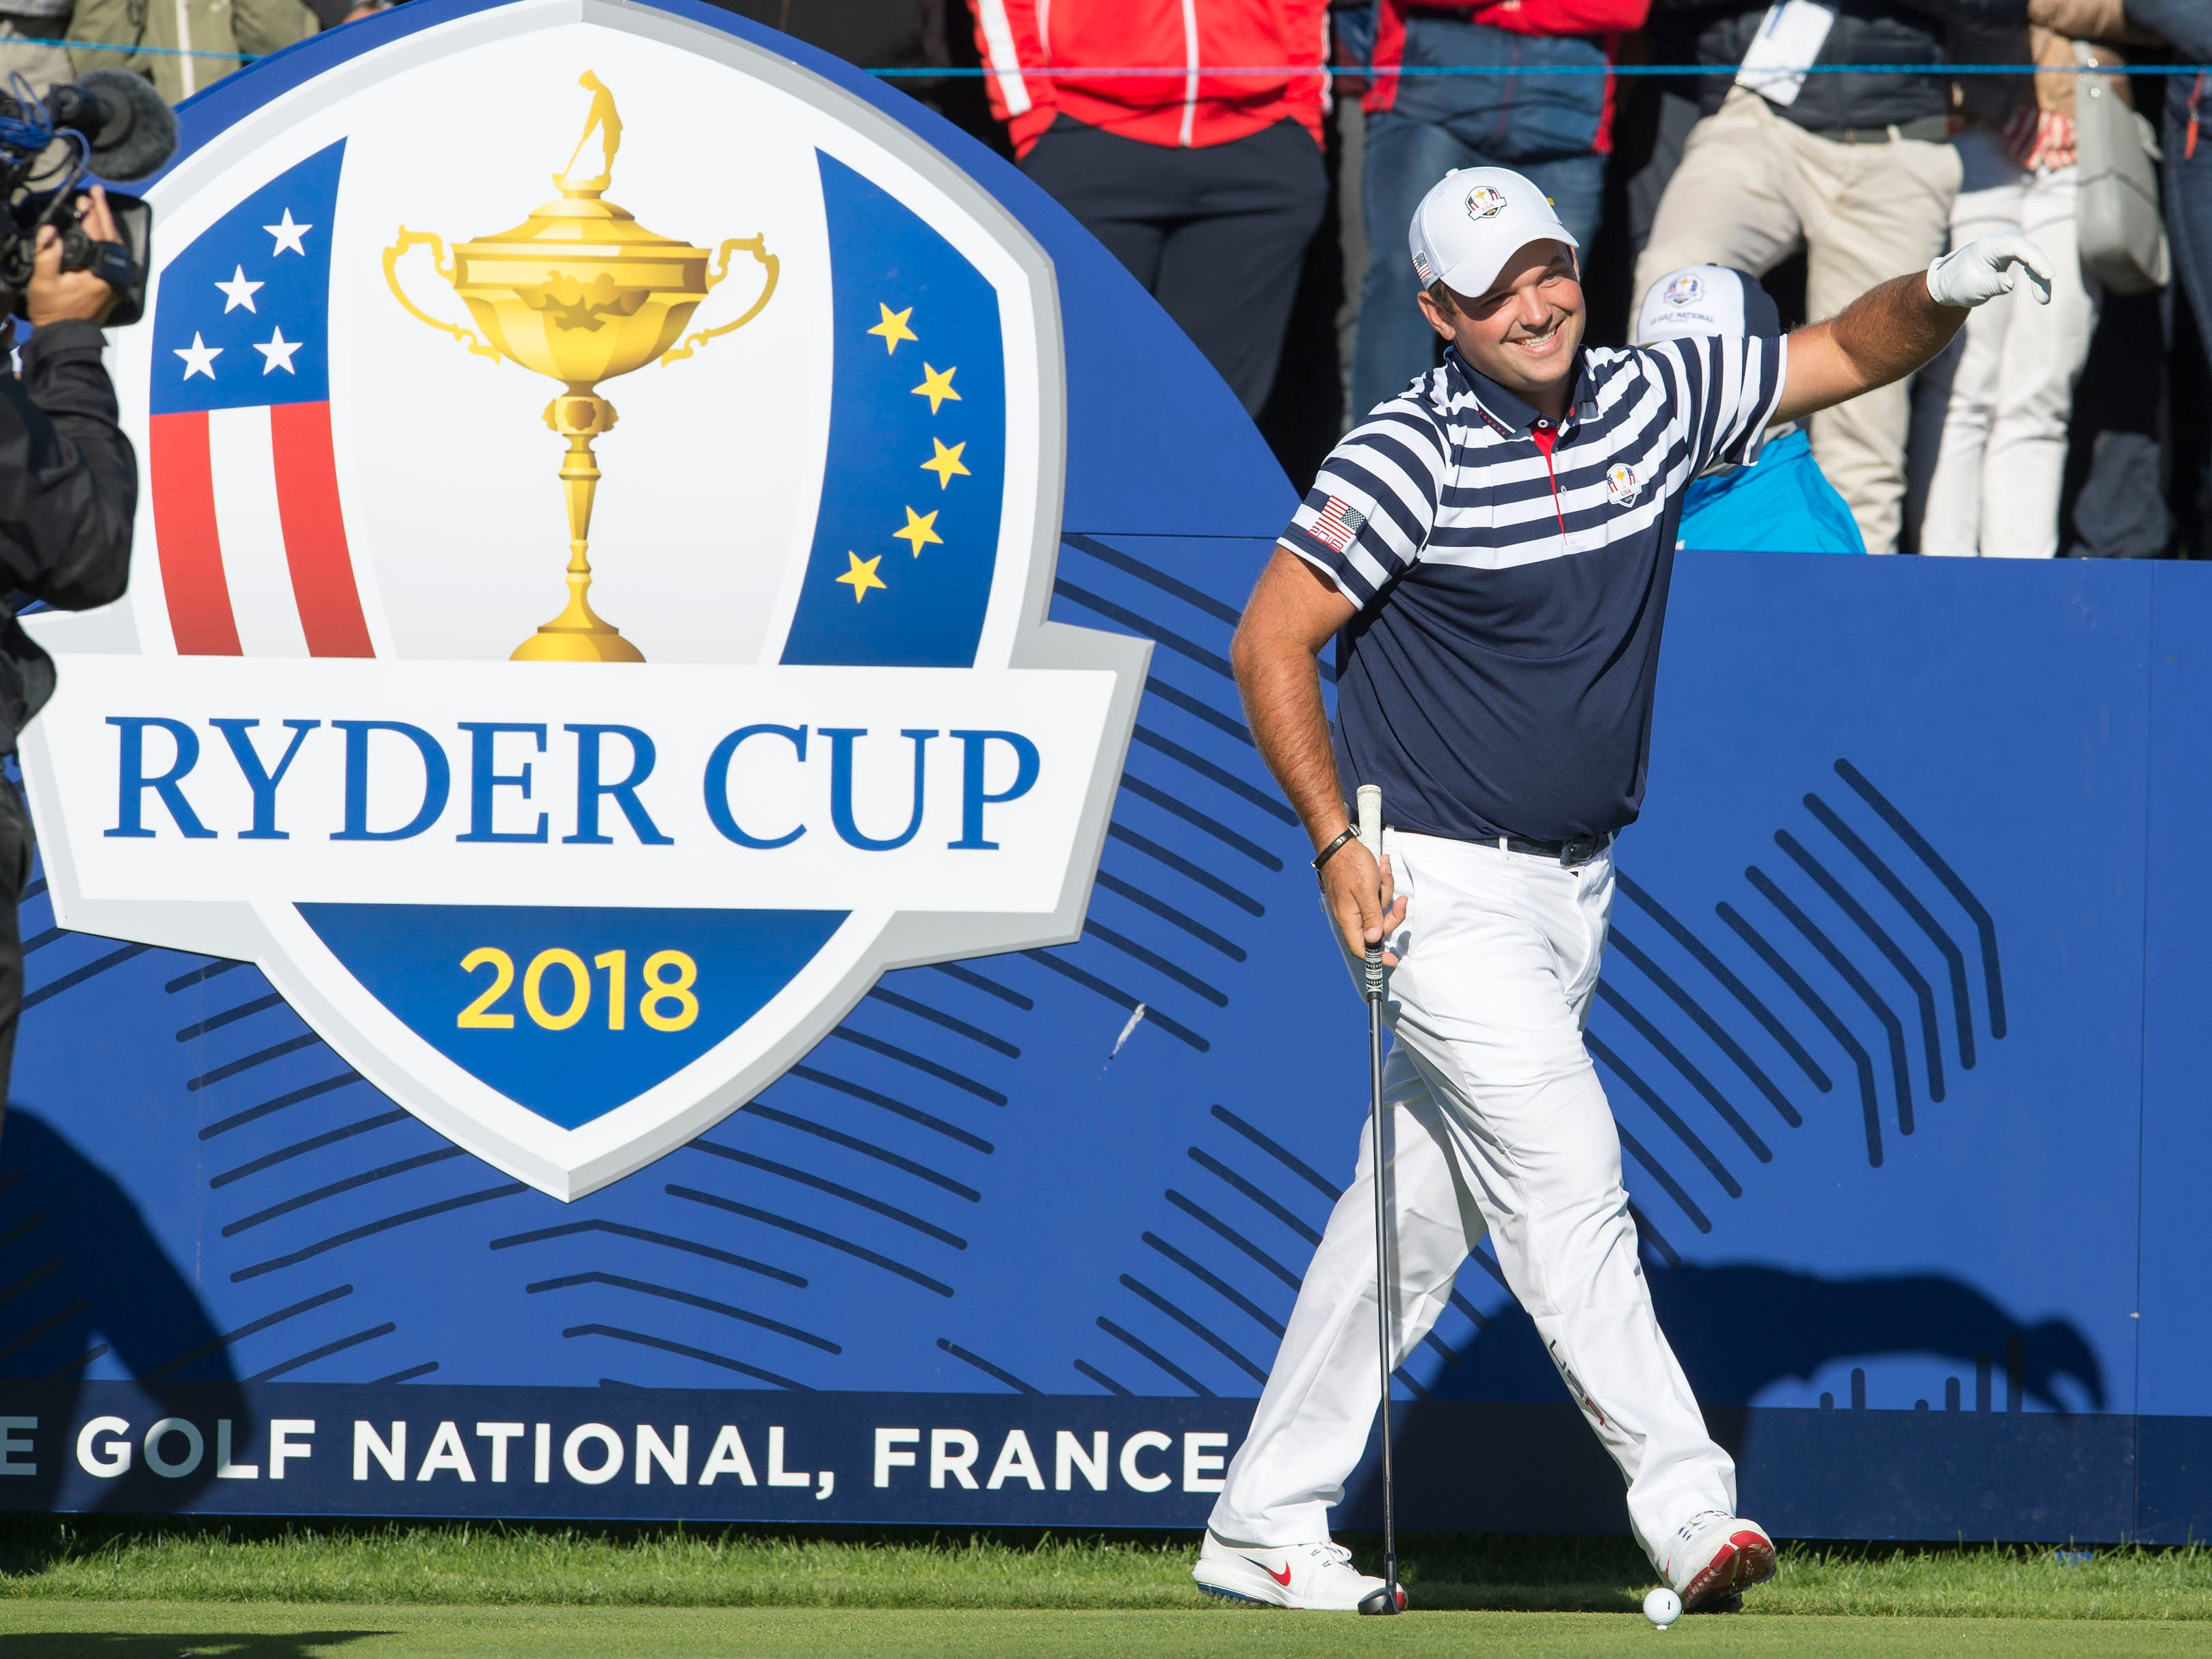 Patrick Reed prepares to tee off during a Ryder Cup practice round.